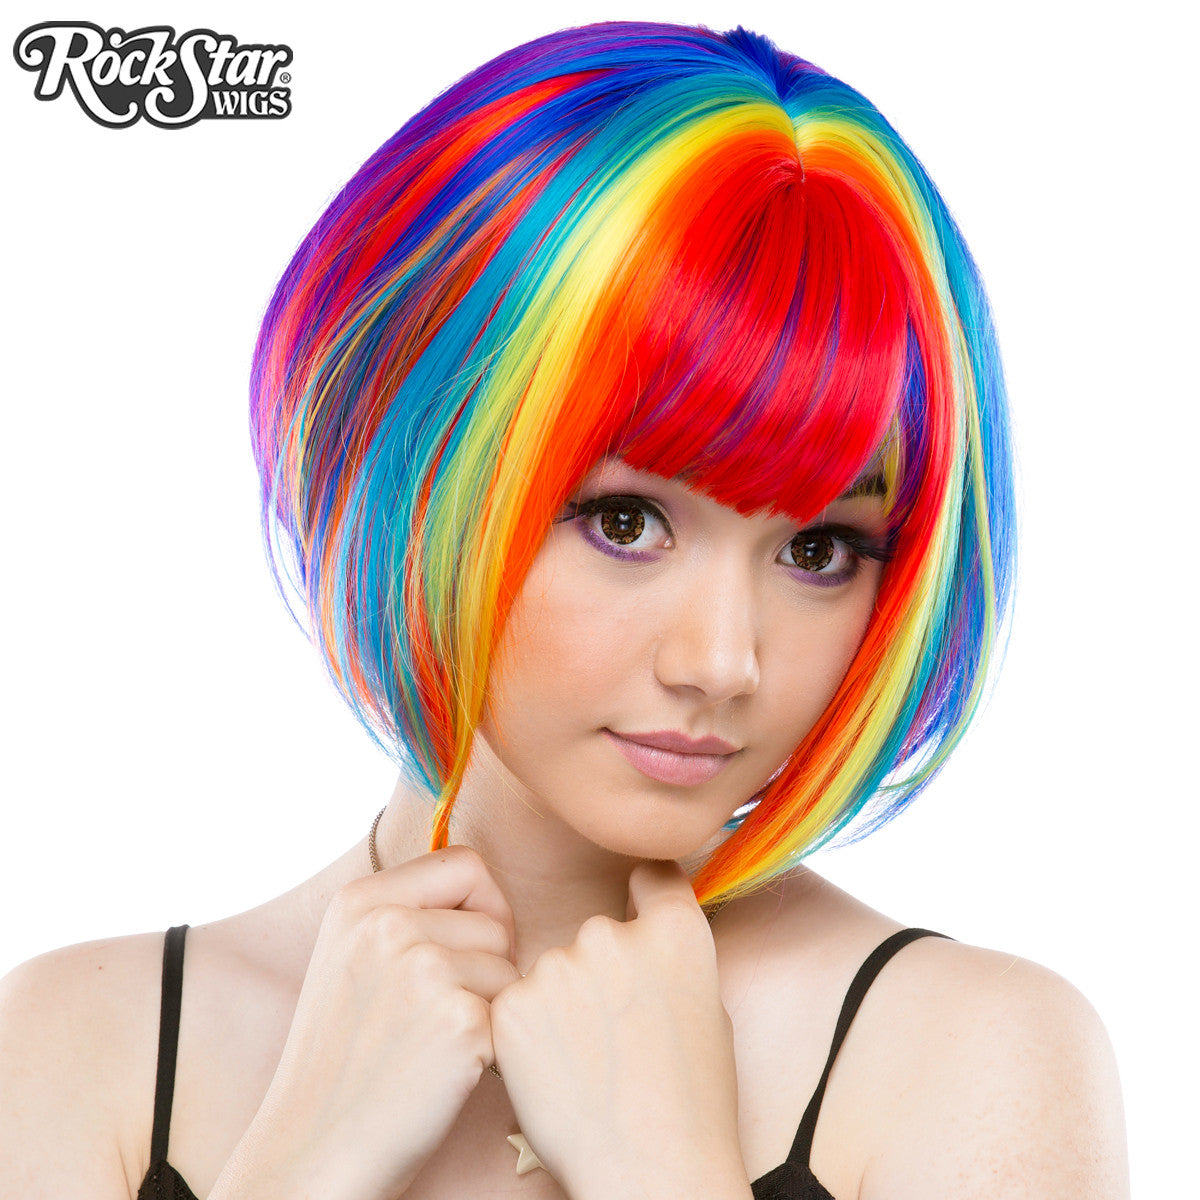 Rockstar Wigs 174 Rainbow Rock Collection Rainbow Bob